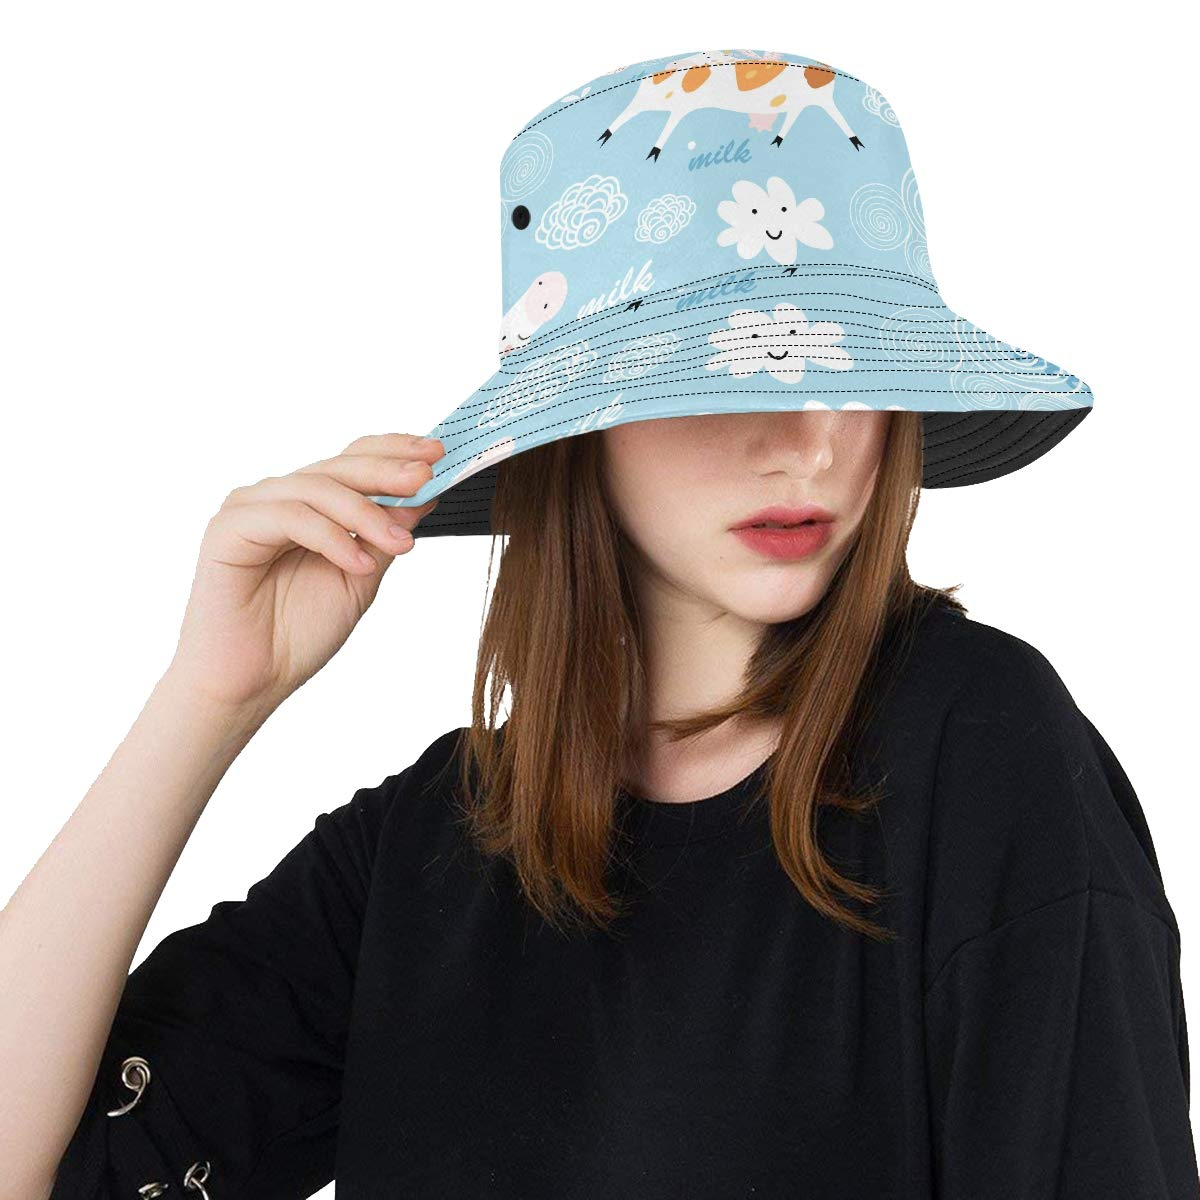 Creative Cow Cartoon Animal New Summer Unisex Cotton Fashion Fishing Sun Bucket Hats for Kid Teens Women and Men with Customize Top Packable Fisherman Cap for Outdoor Travel